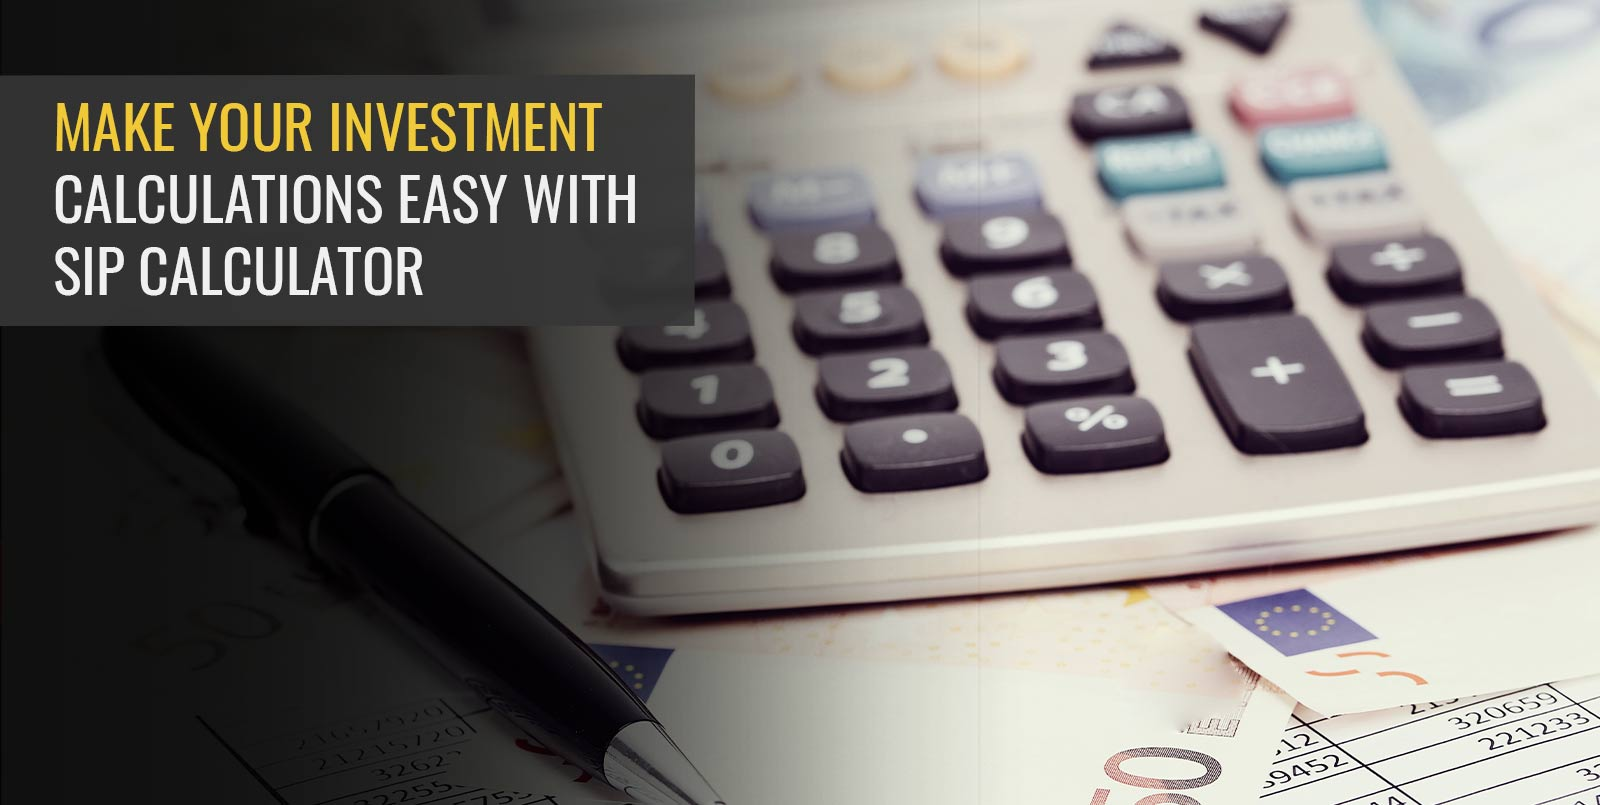 MAKE YOUR INVESTMENT CALCULATIONS EASY WITH SIP CALCULATOR